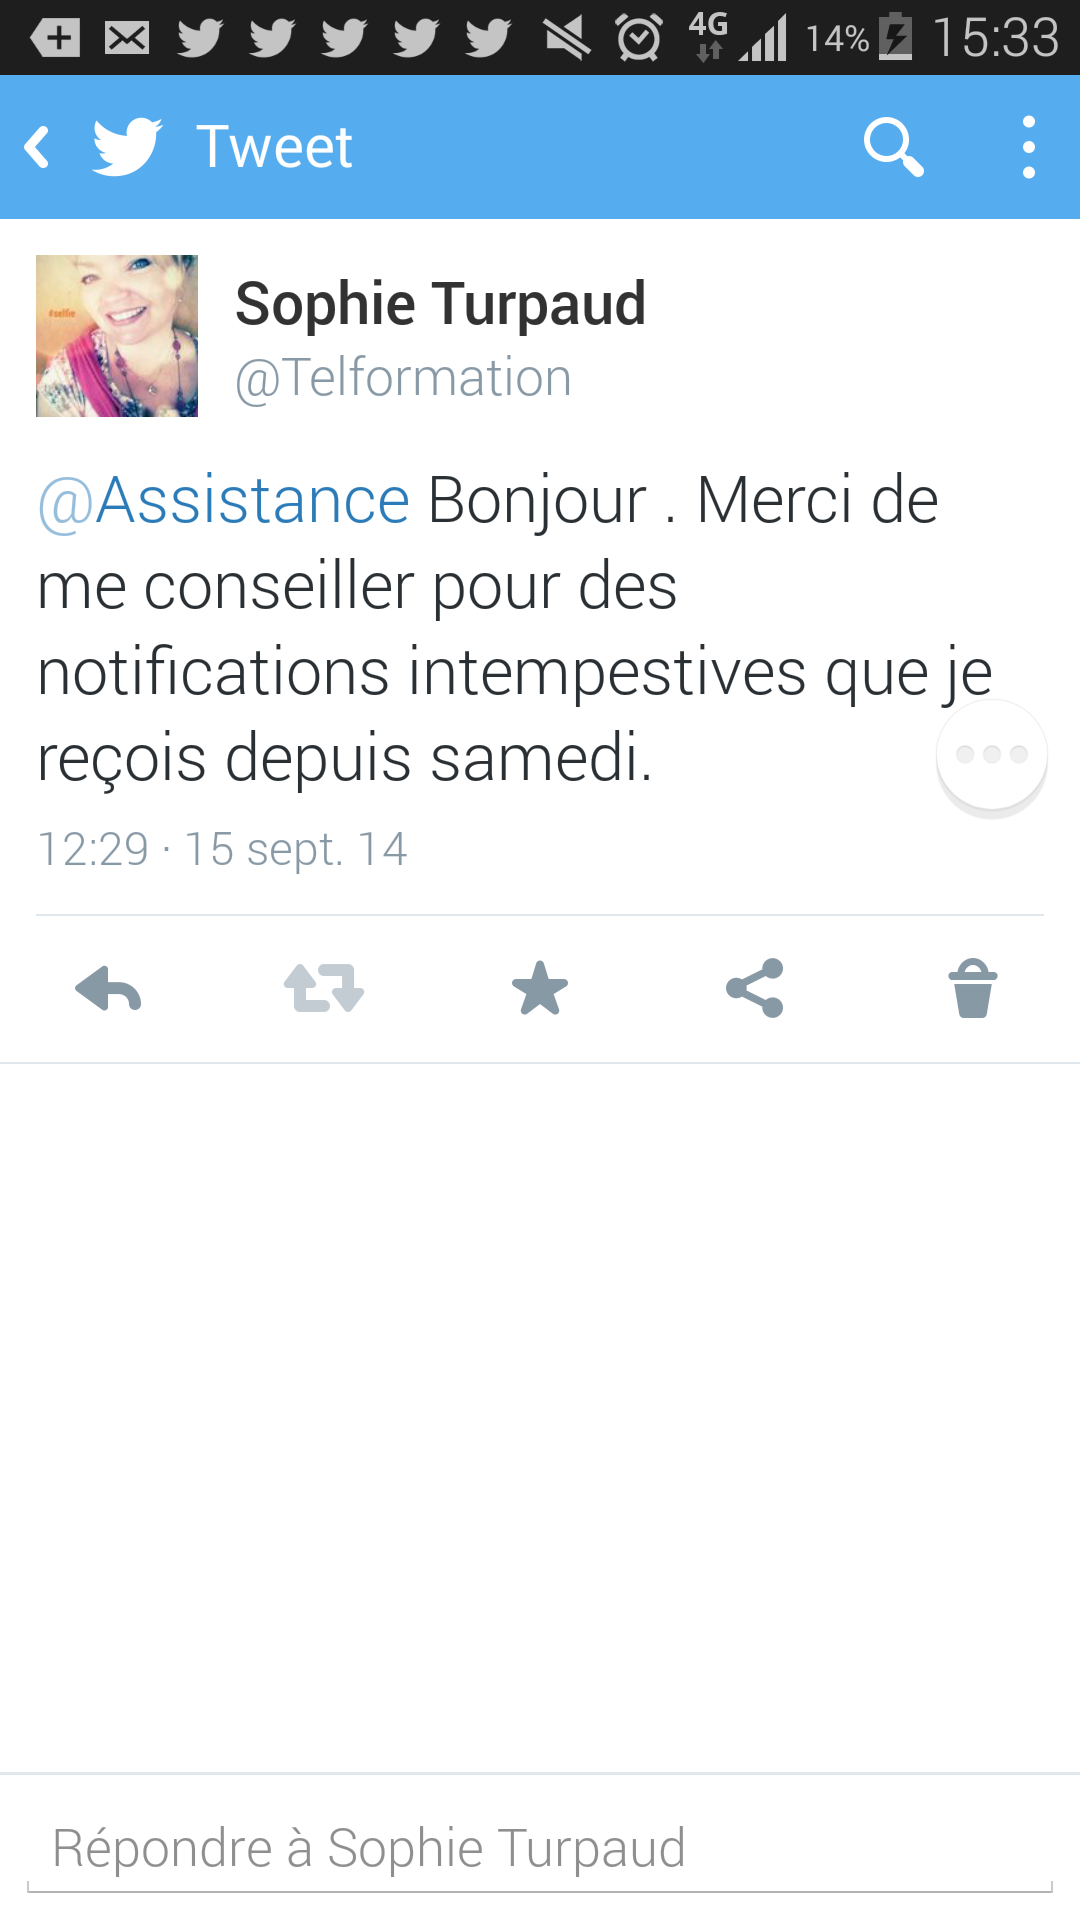 Assistance Twitter